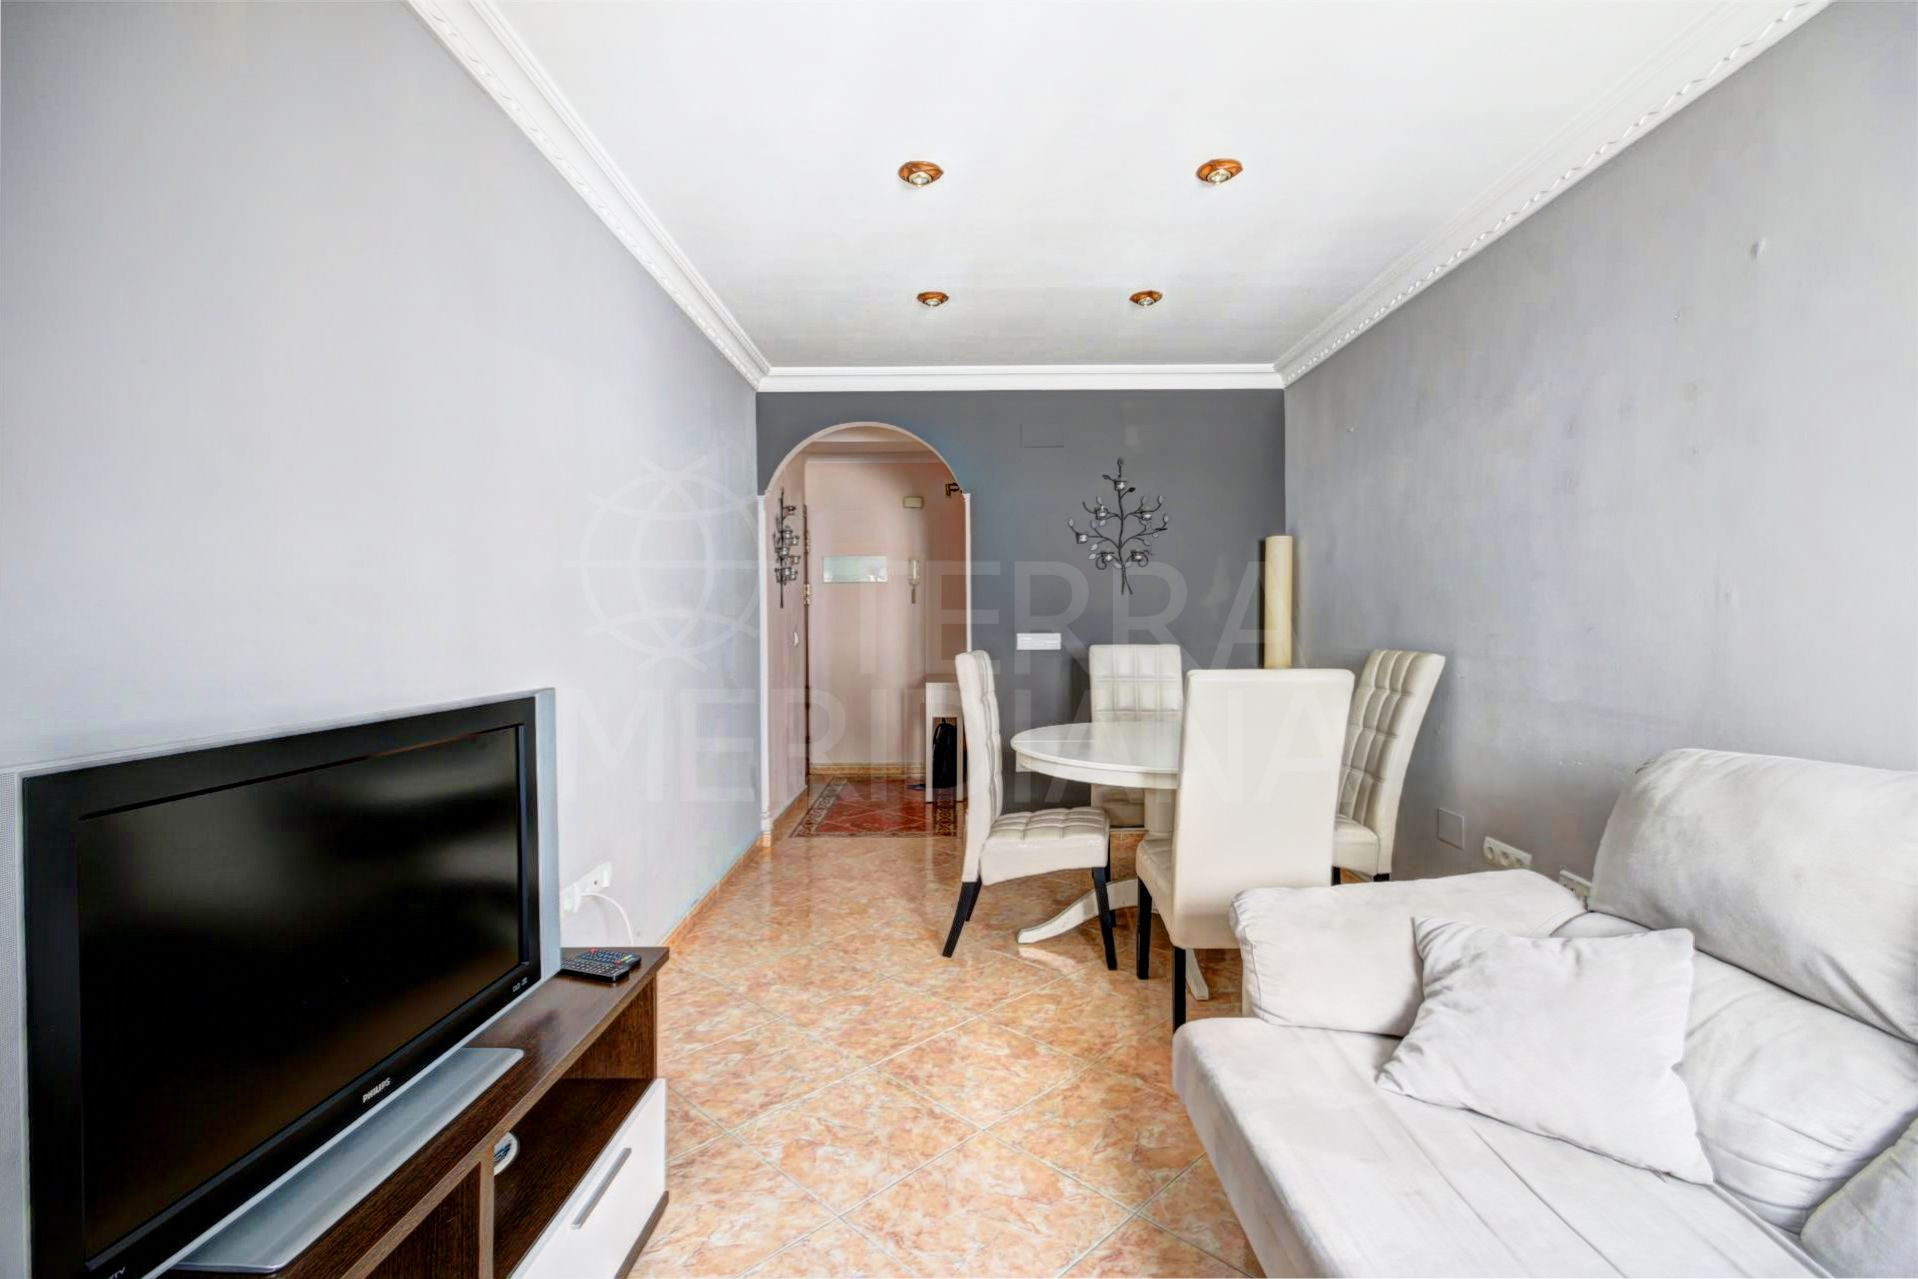 3 bedroom apartment for sale in the center of Estepona with lift